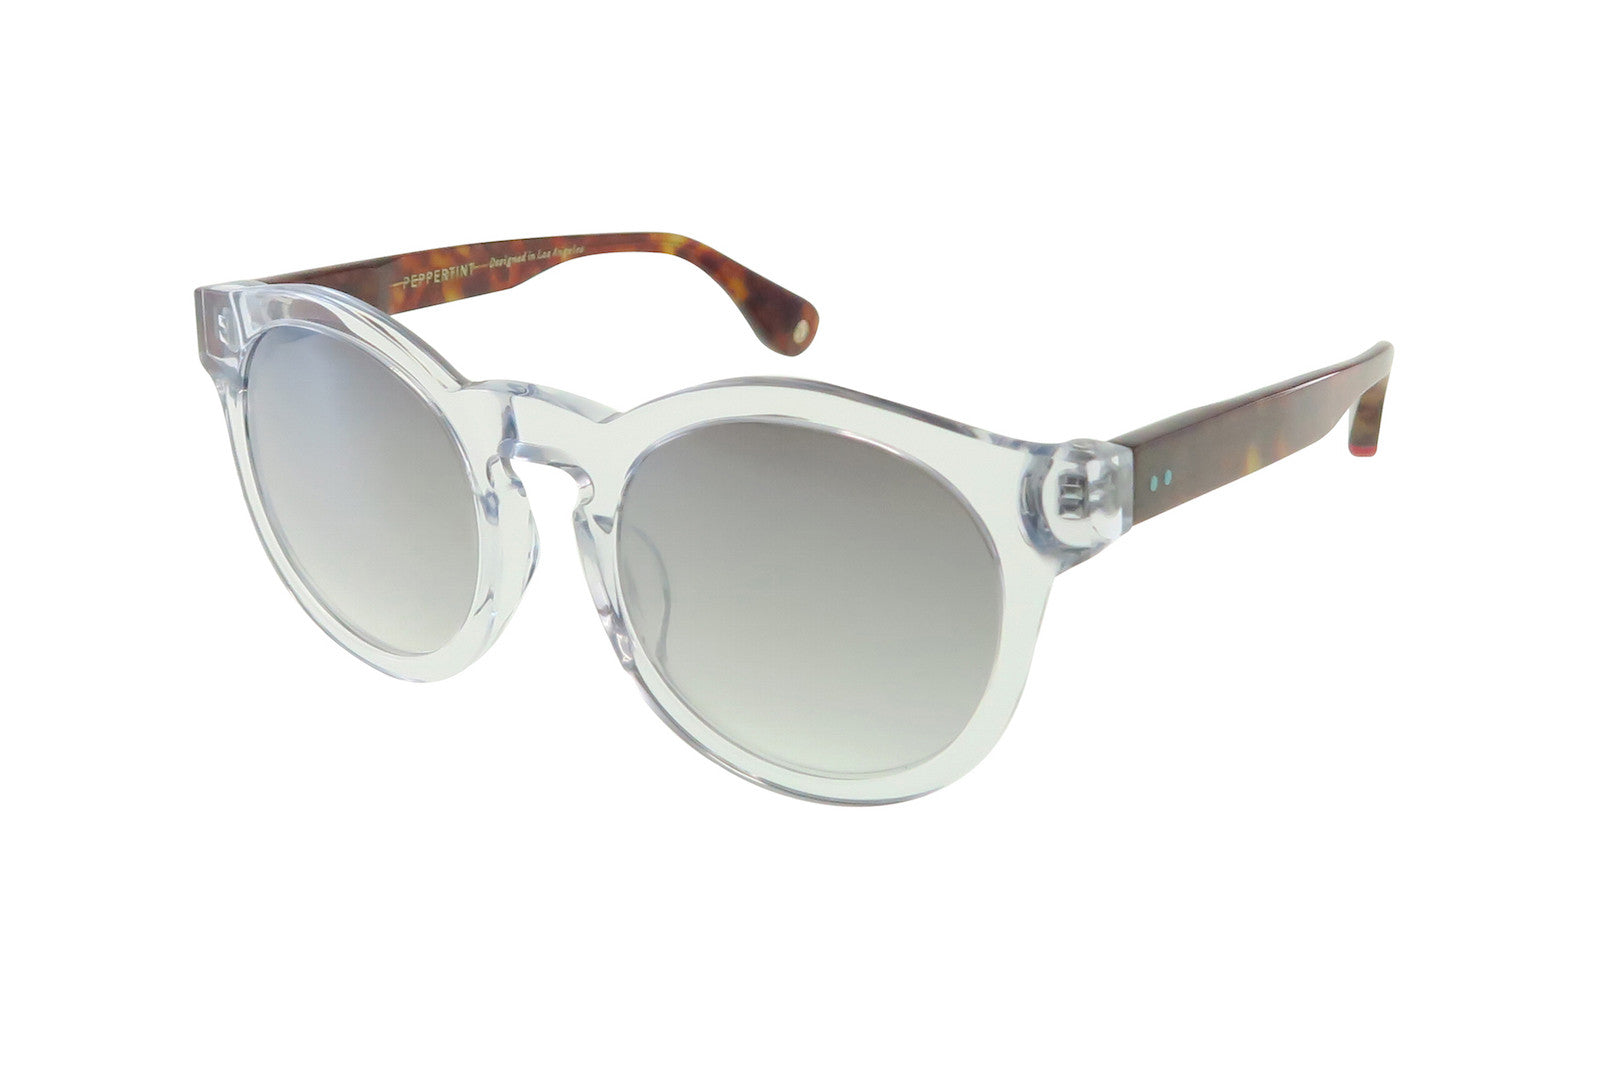 San Vicente 028 - Peppertint - Designer sunglasses